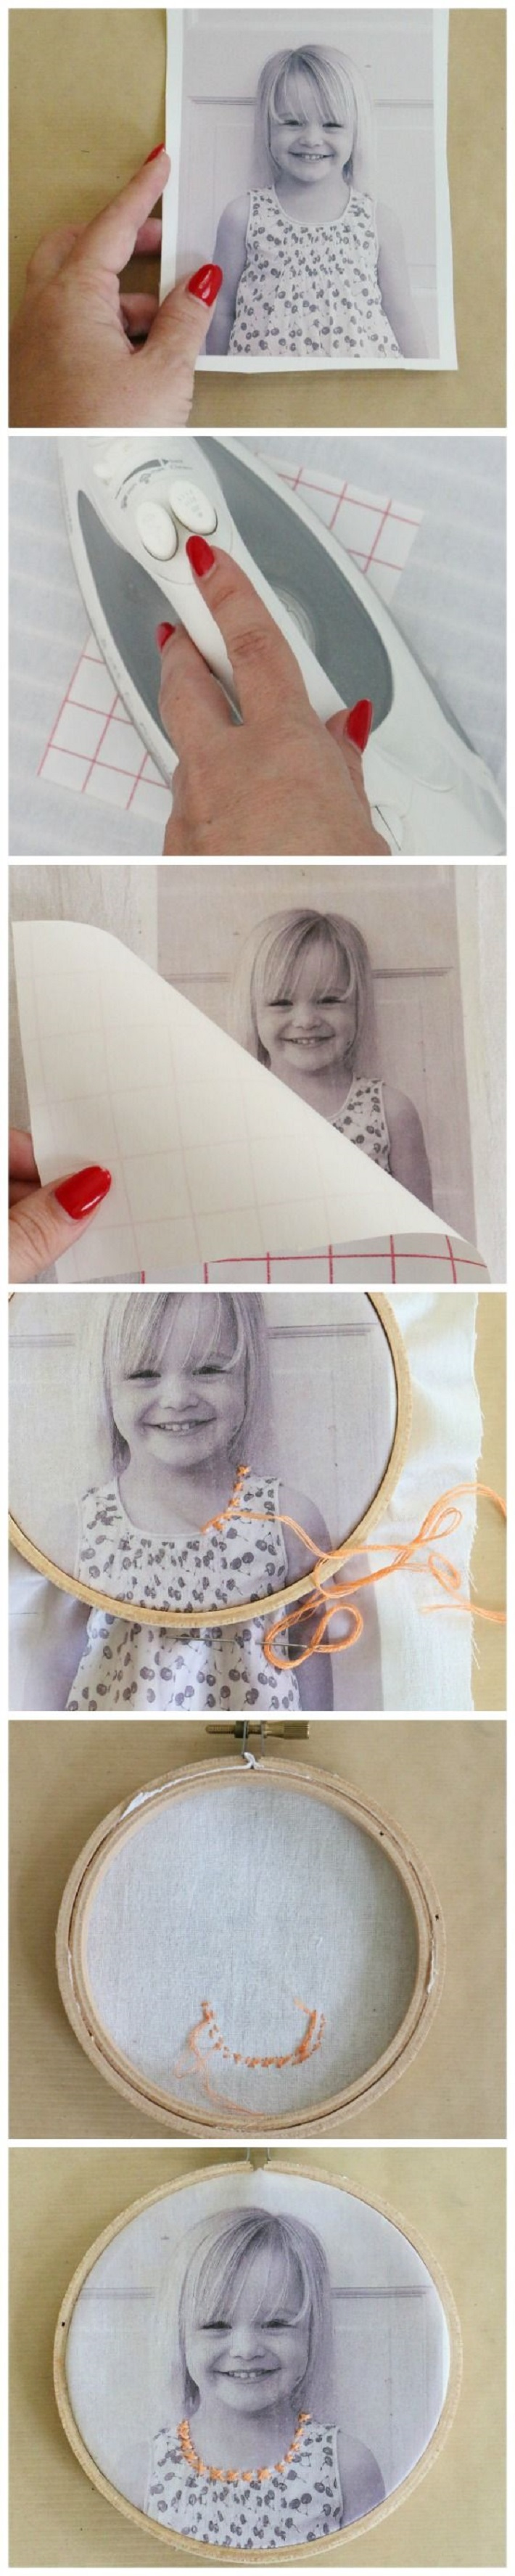 Embroidered Photo Family Portraits